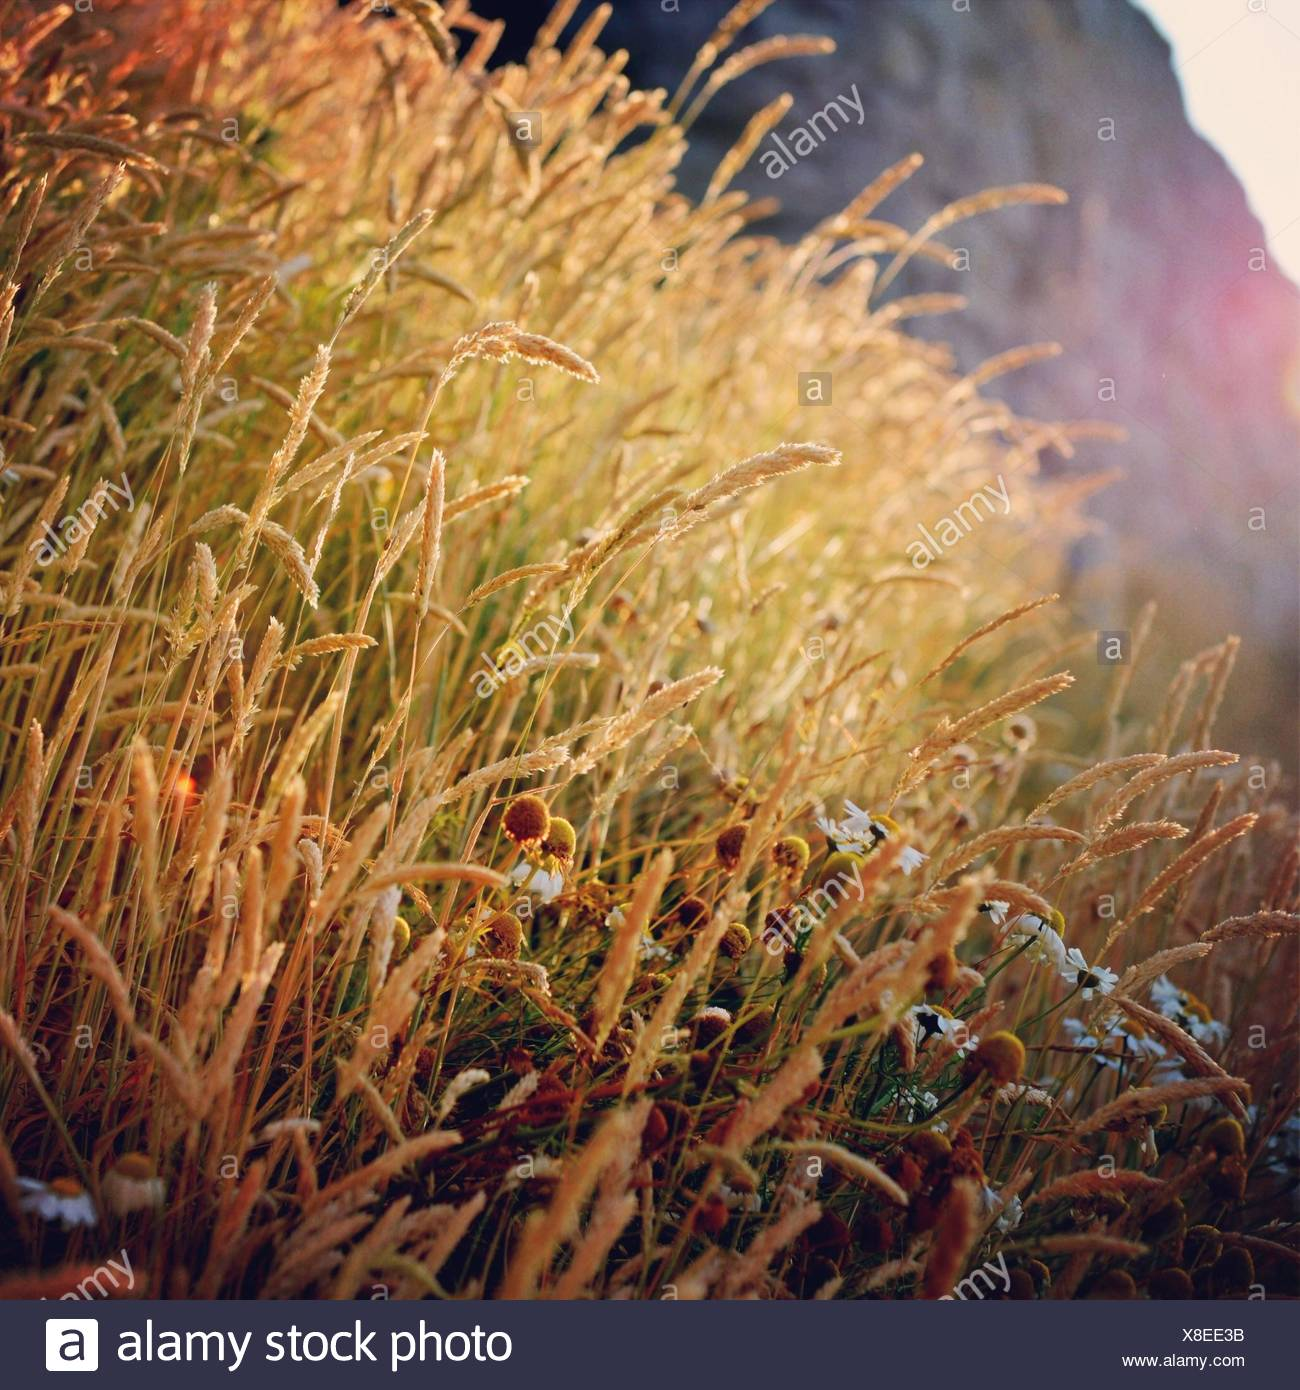 Close-up of feather grass reeds - Stock Image